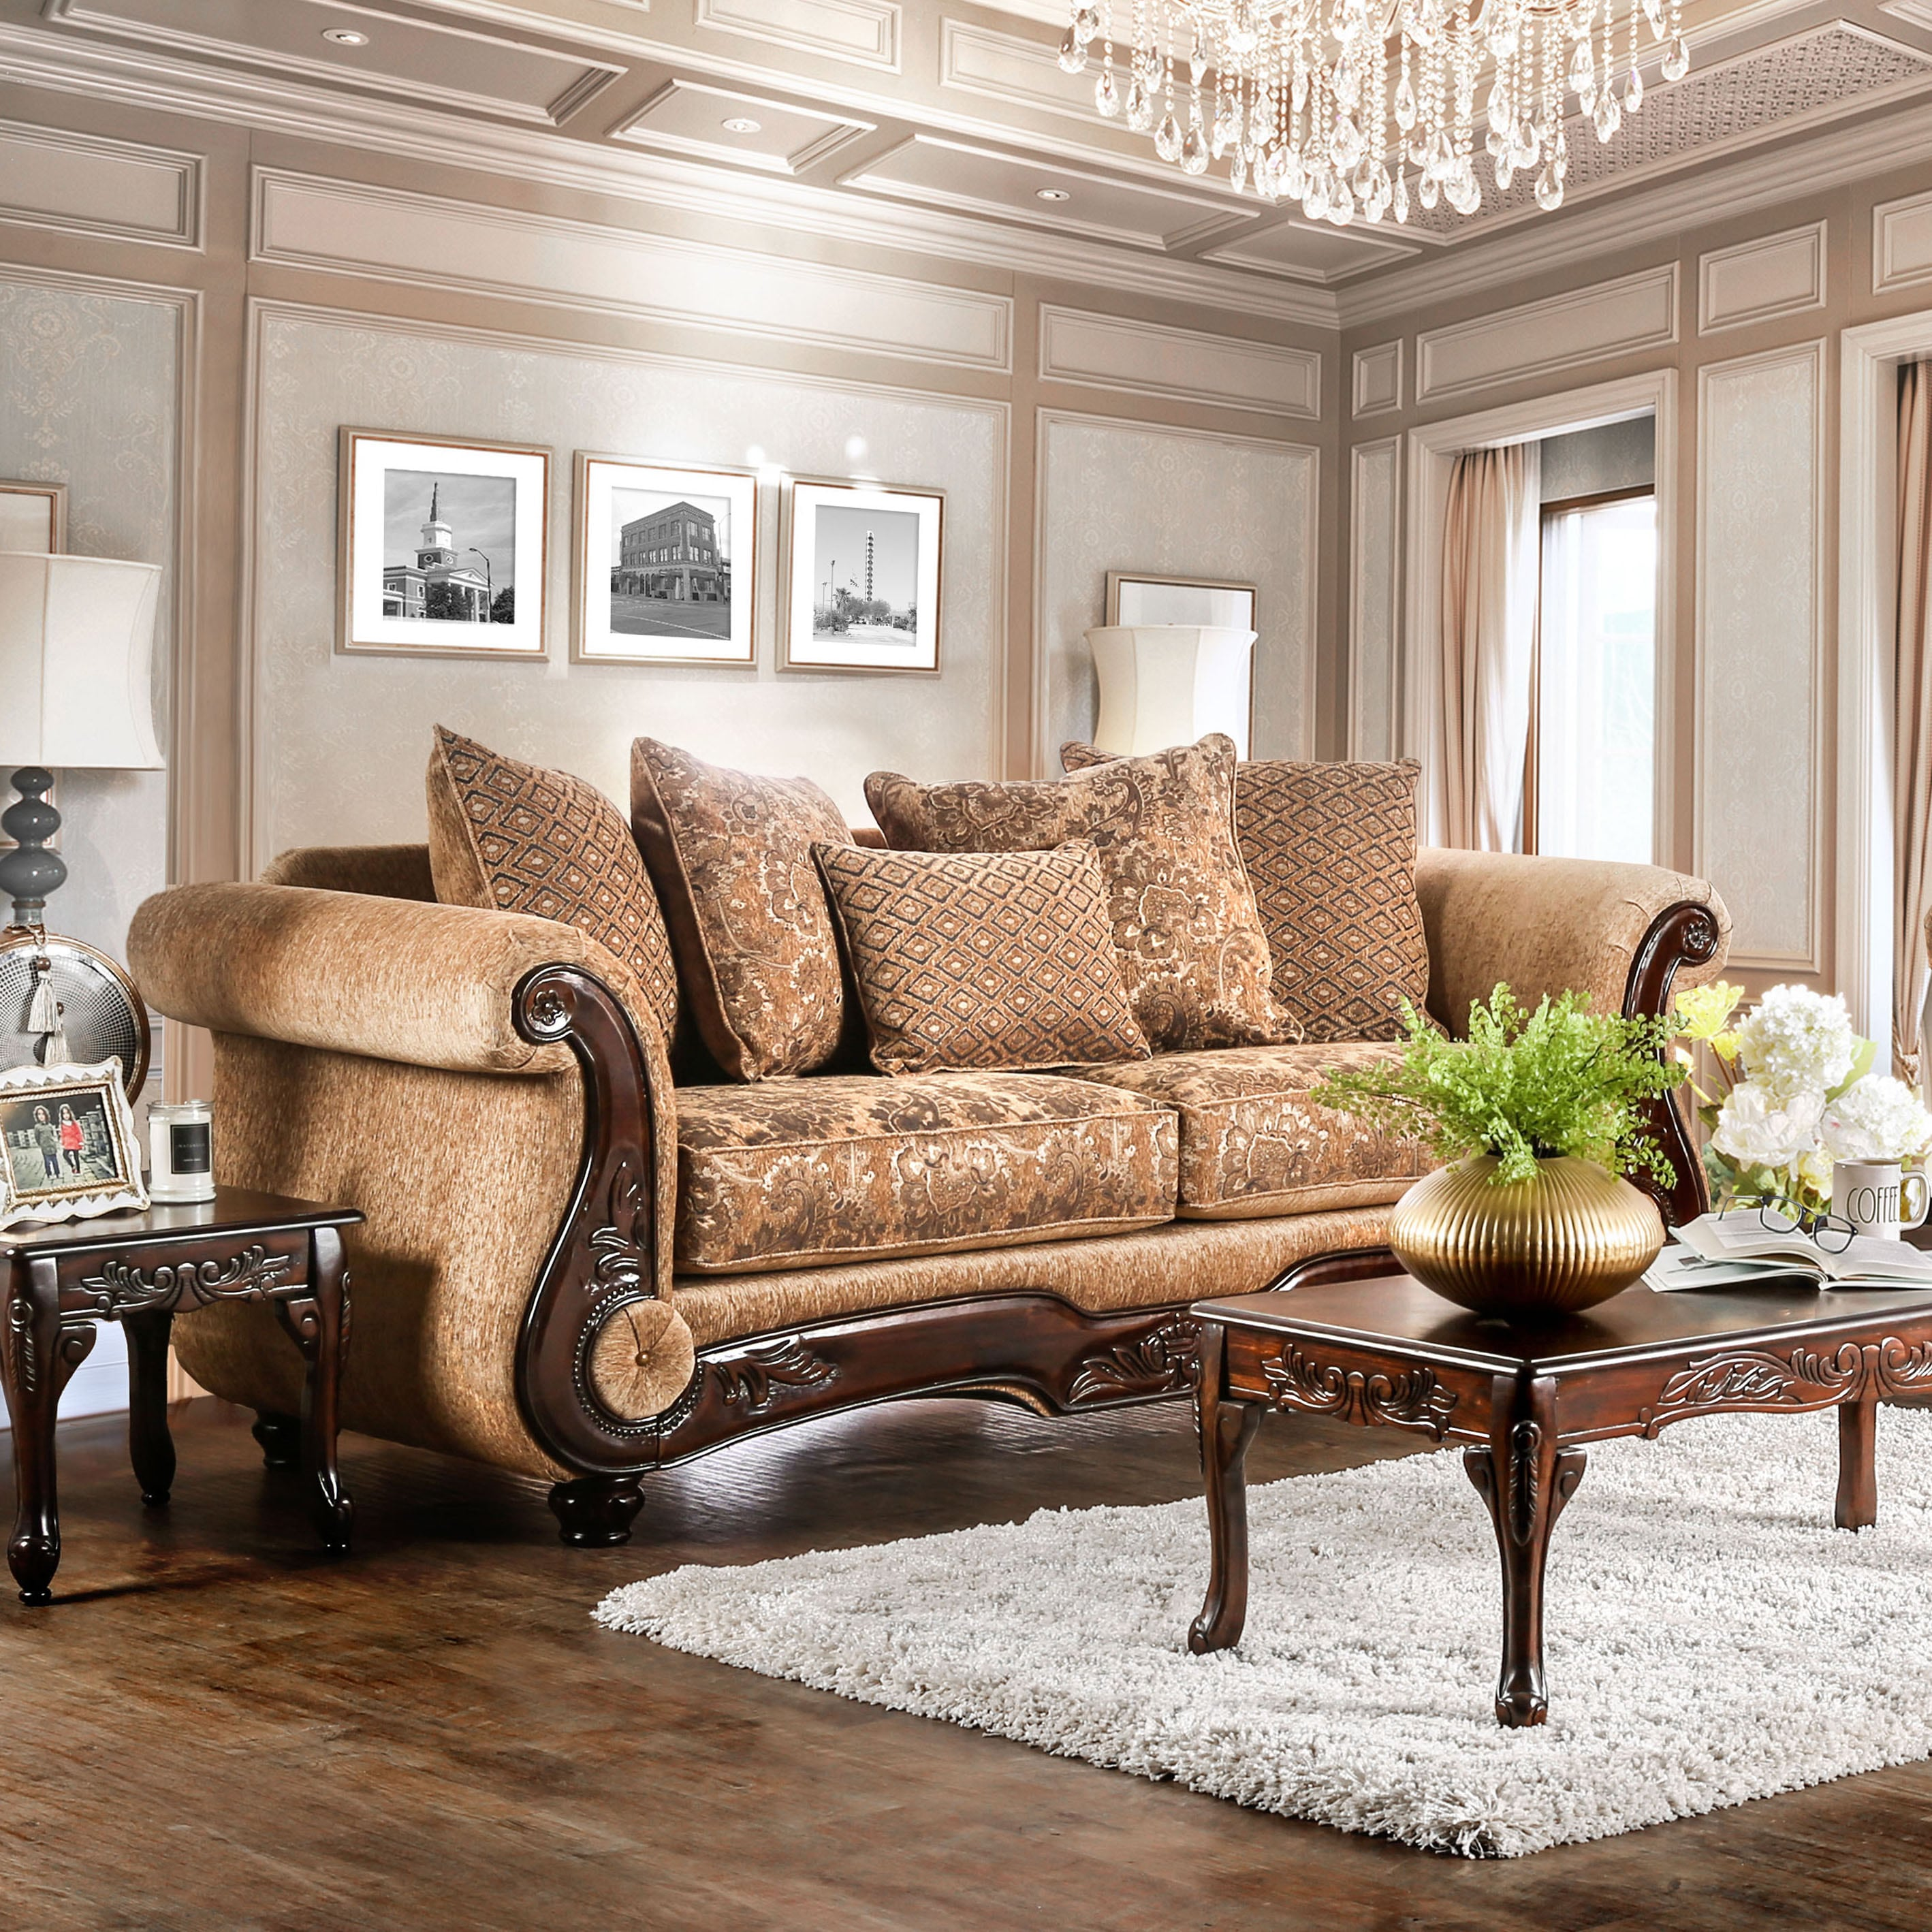 Ersa Traditional Wood Trim Chenille Fabric Gold Bronze Sofa By Furniture Of America Free Shipping Today 14228775